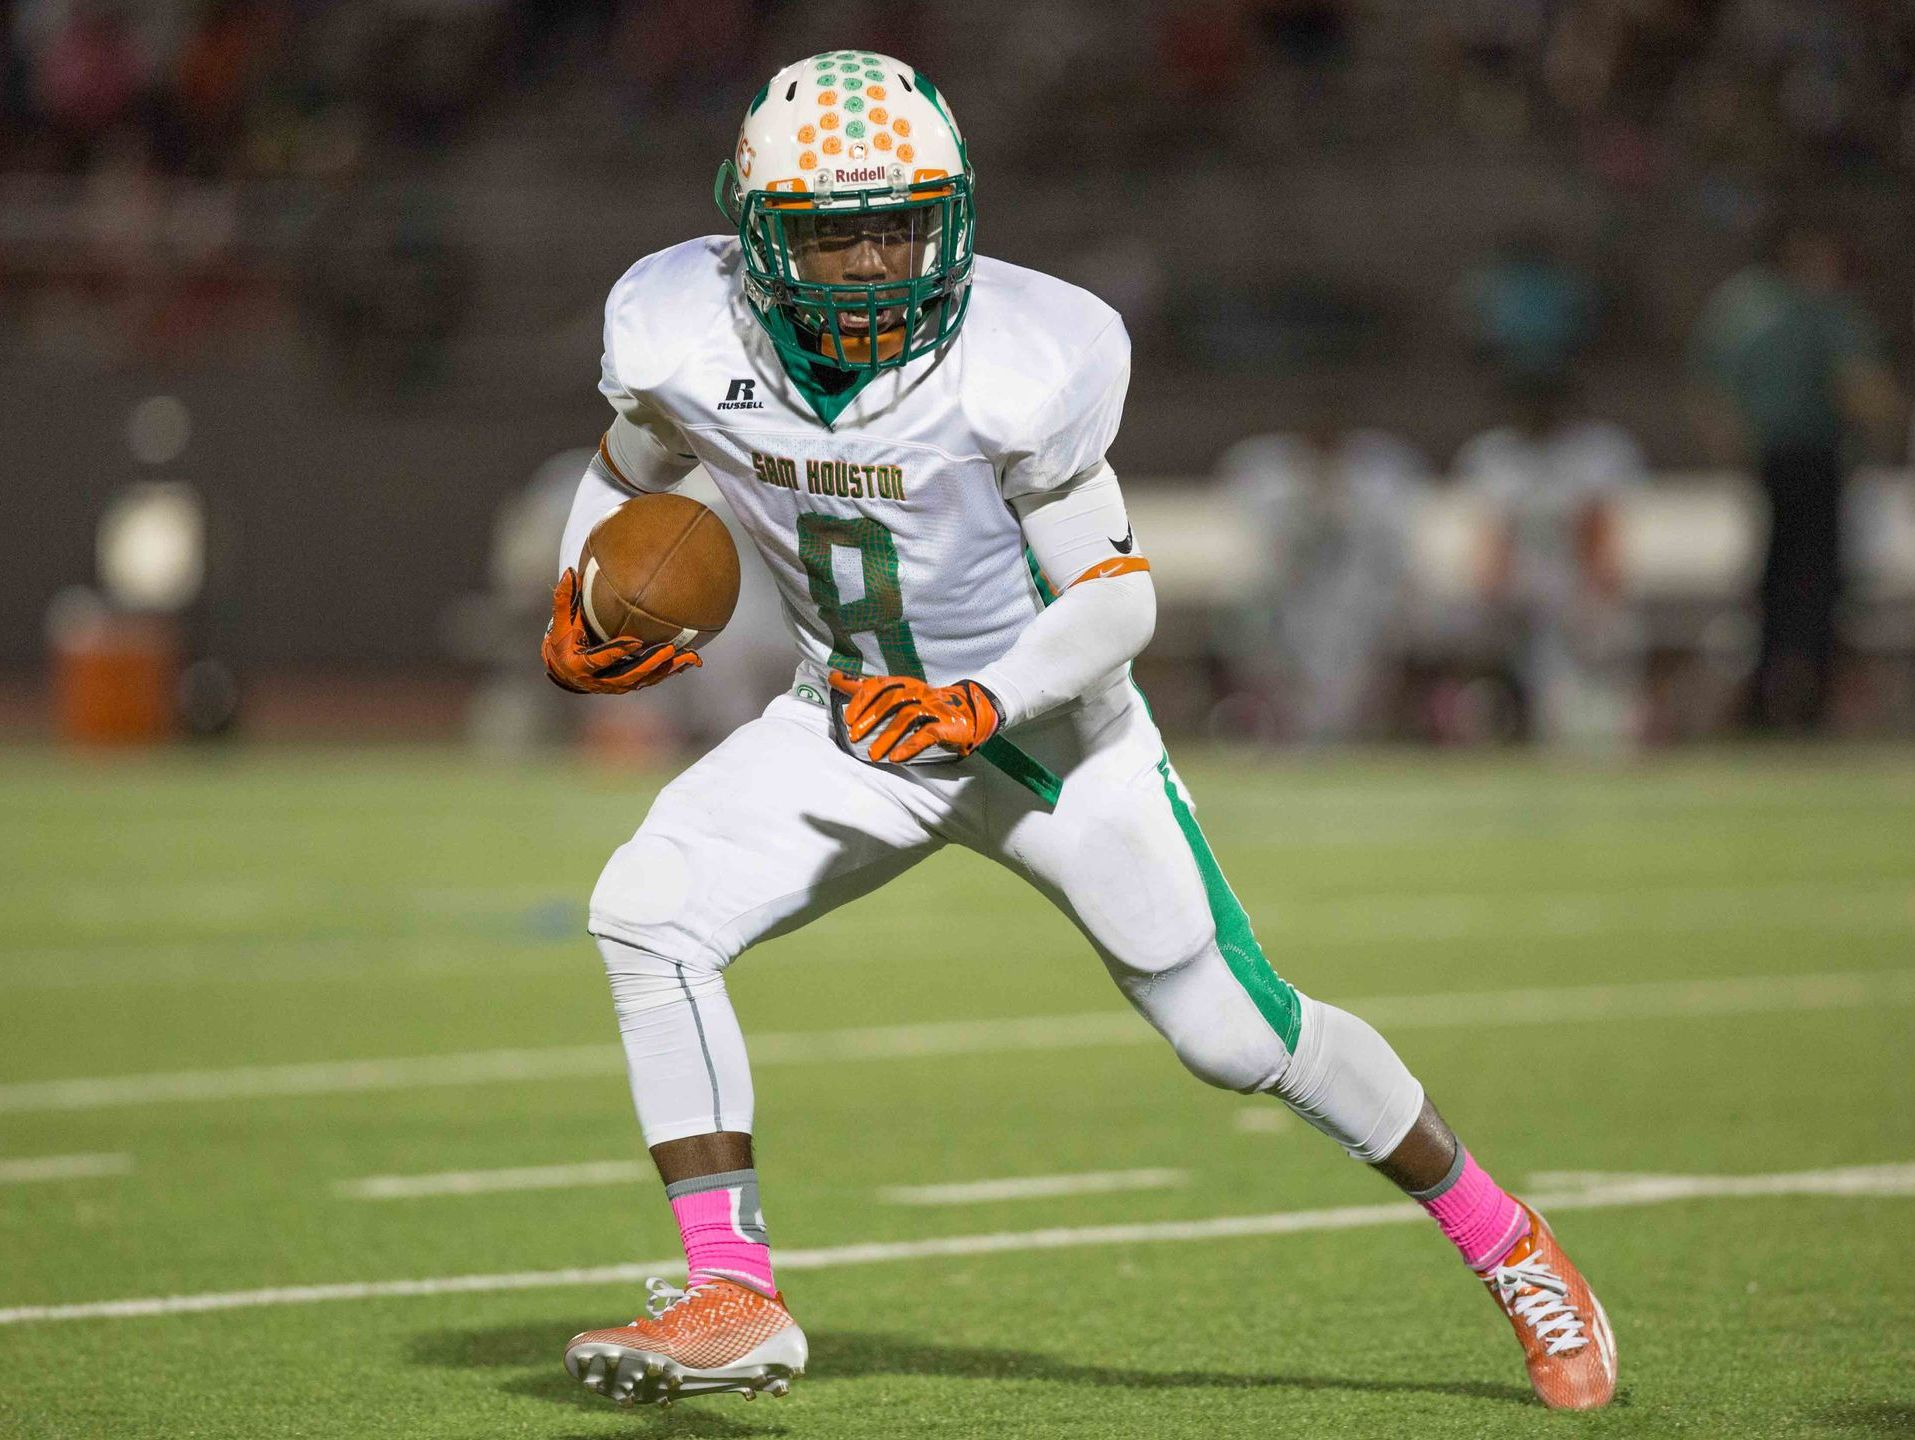 Senior wide receiver Travon Vaughns, running in the open field against Highlands, has caught 26 passes for 486 yards and six TDs this season.